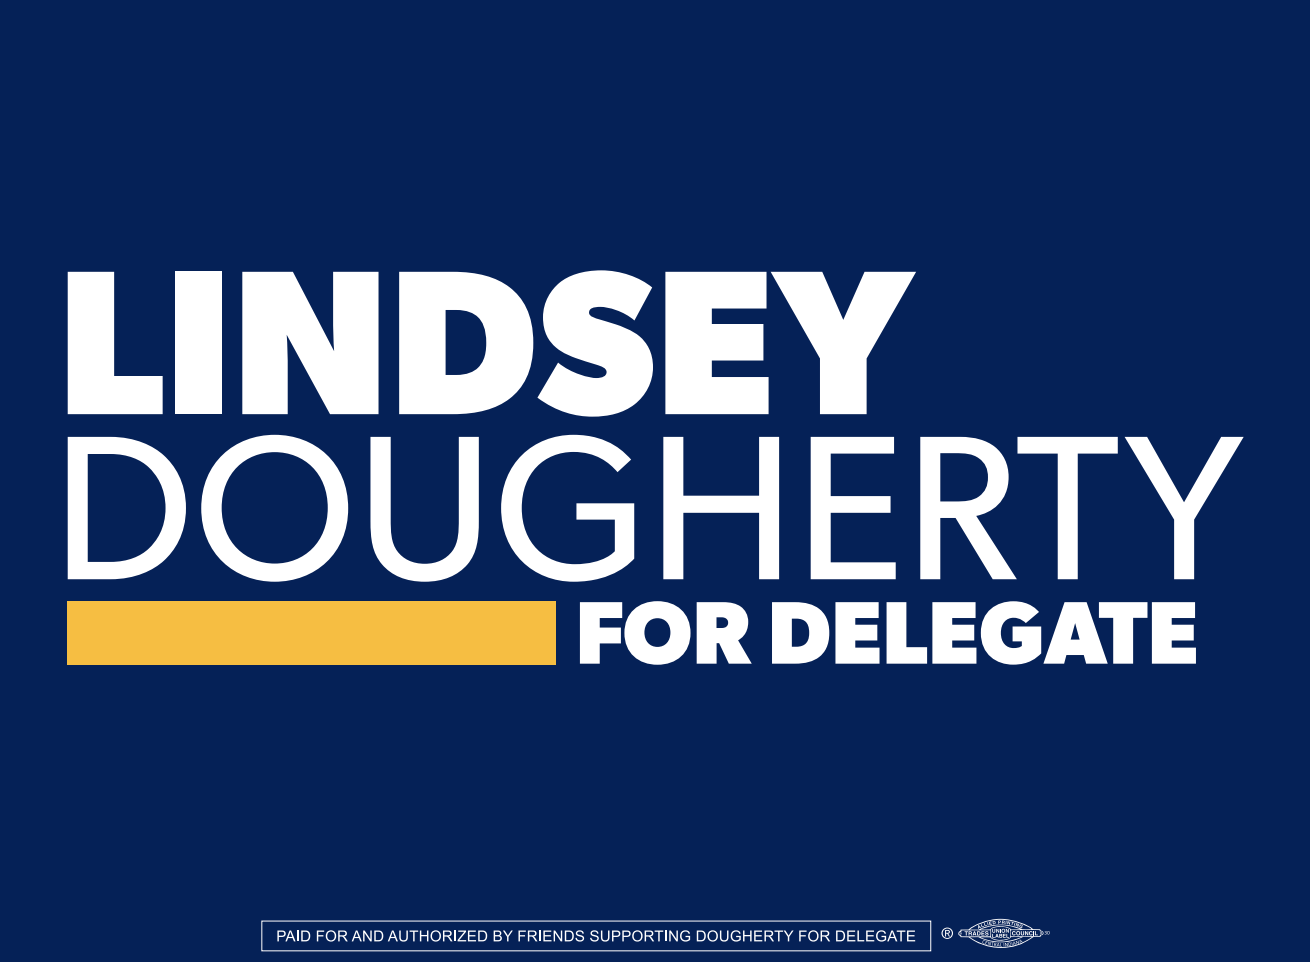 - Sign up below to reserve your Lindsey Dougherty for Delegate Yard Sign. We'll hand deliver the sign to your door.